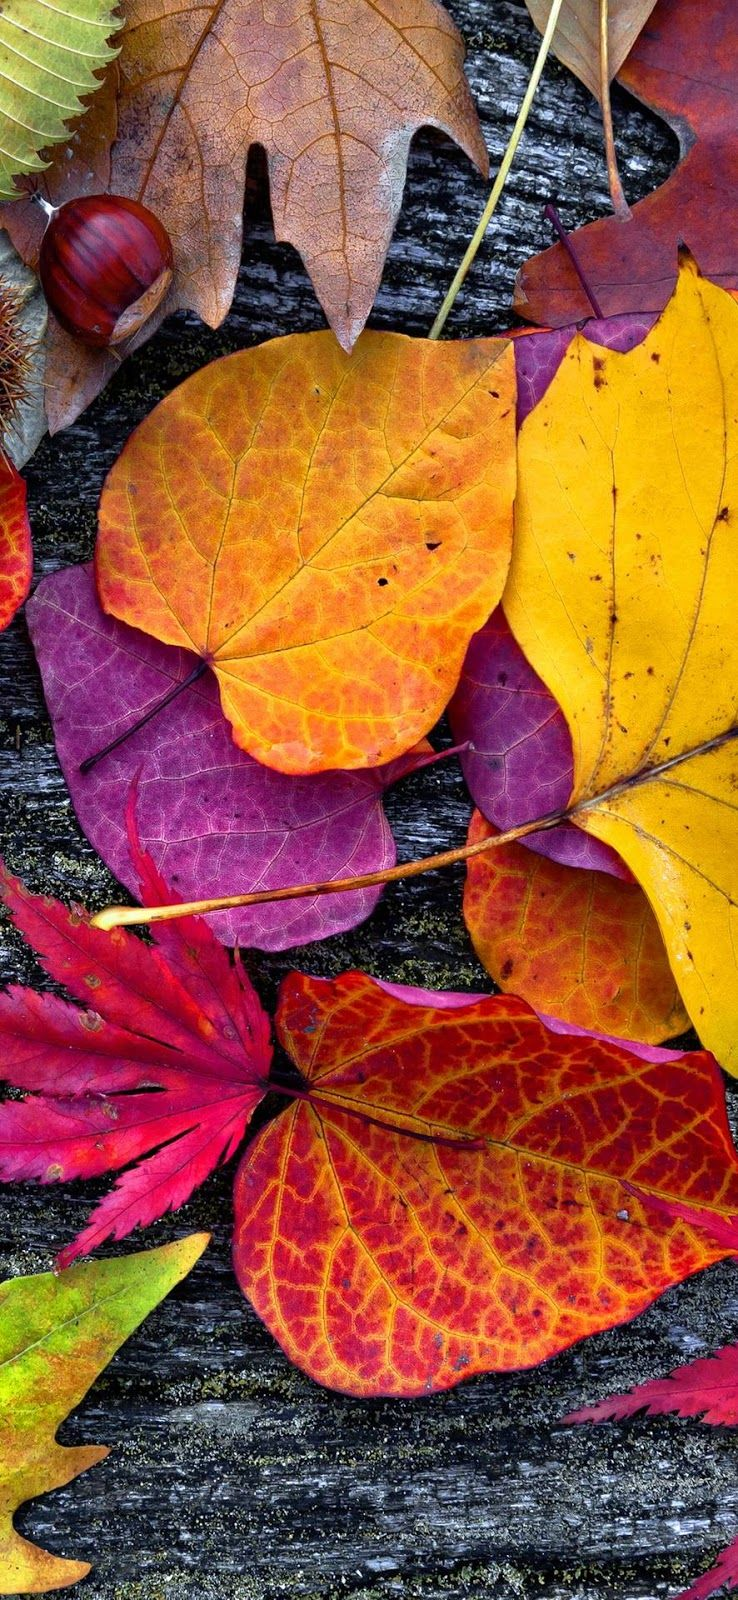 Nature Wallpaper Download Images Of Nature Beauty Nature Wallpaper Hd 3d Natural Photo Galle Iphone Wallpaper Fall Leaves Fall Wallpaper Nature Wallpaper